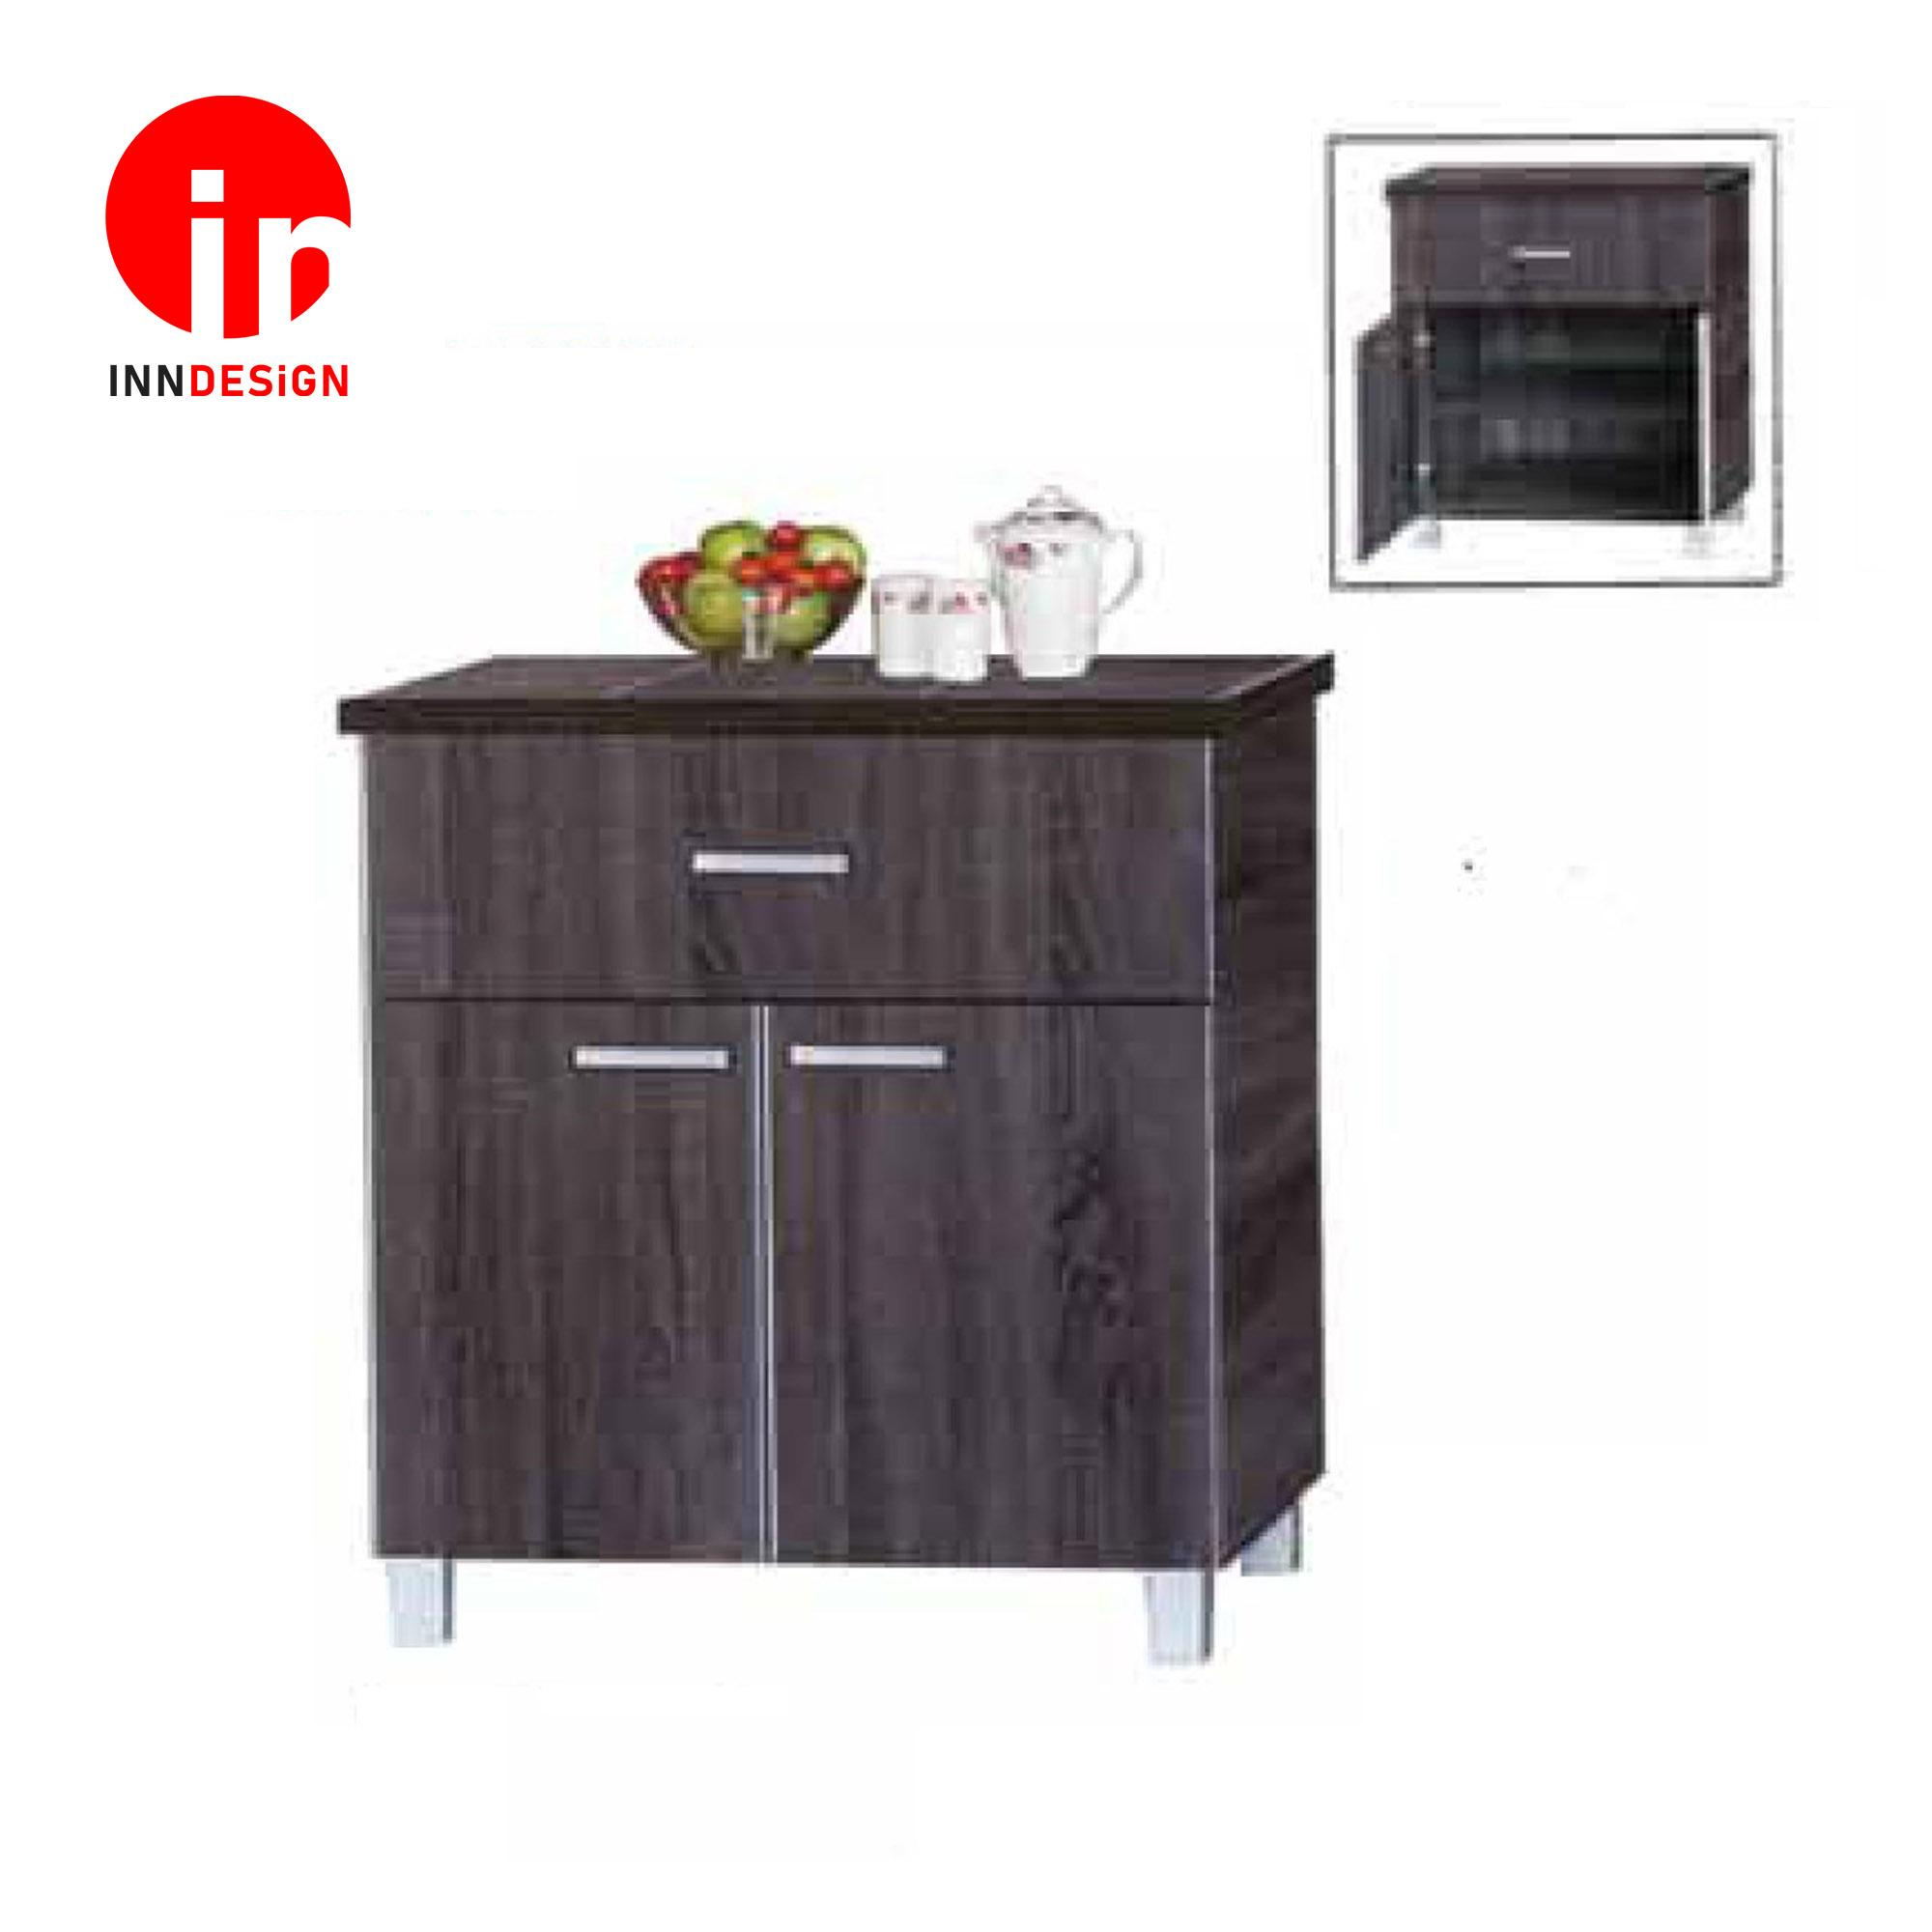 Cassiva 2 Doors With Drawer Kitchen Cabinet (Ceramic Tiles Top) (Free Delivery and Installation) (Walnut)